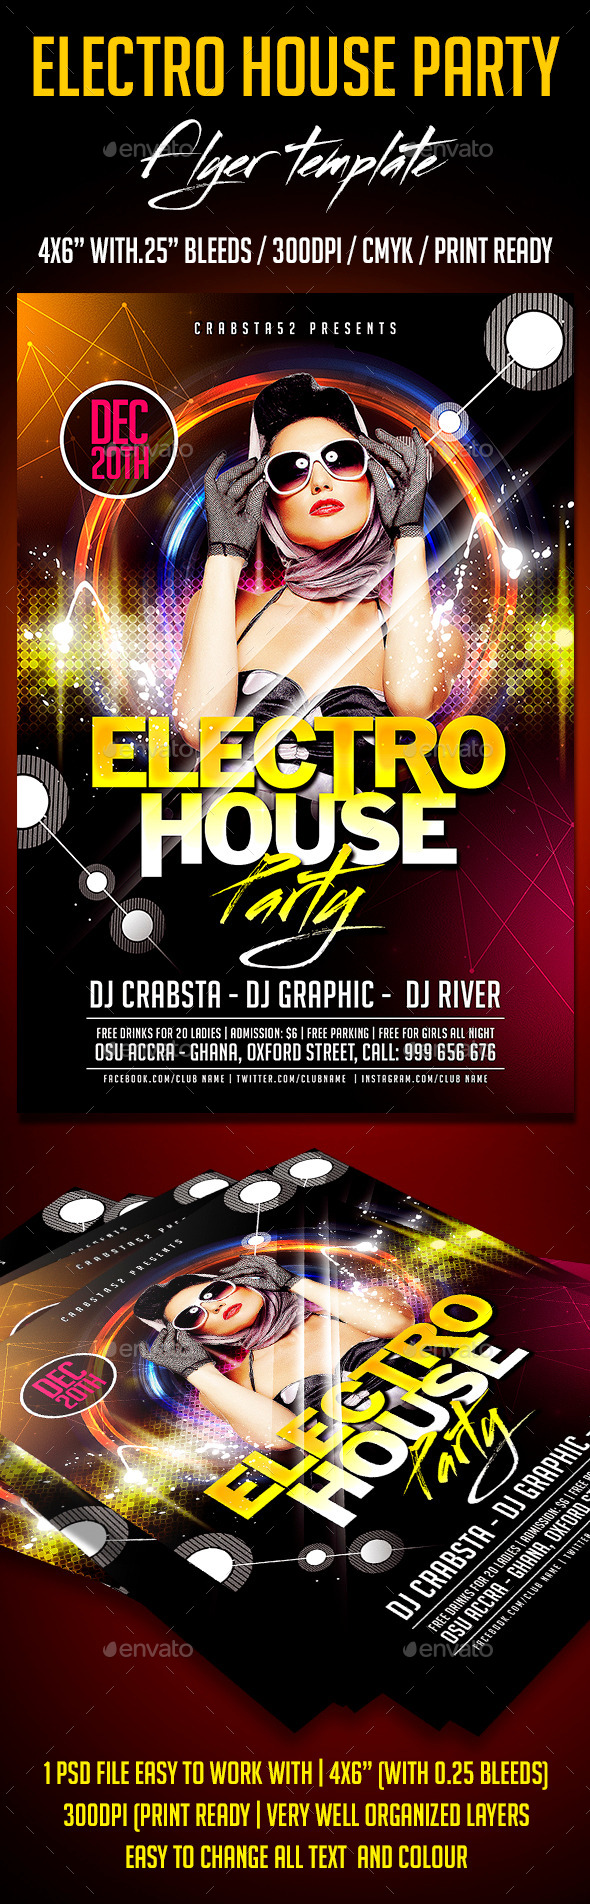 Electro House Party Flyer Template - Clubs & Parties Events